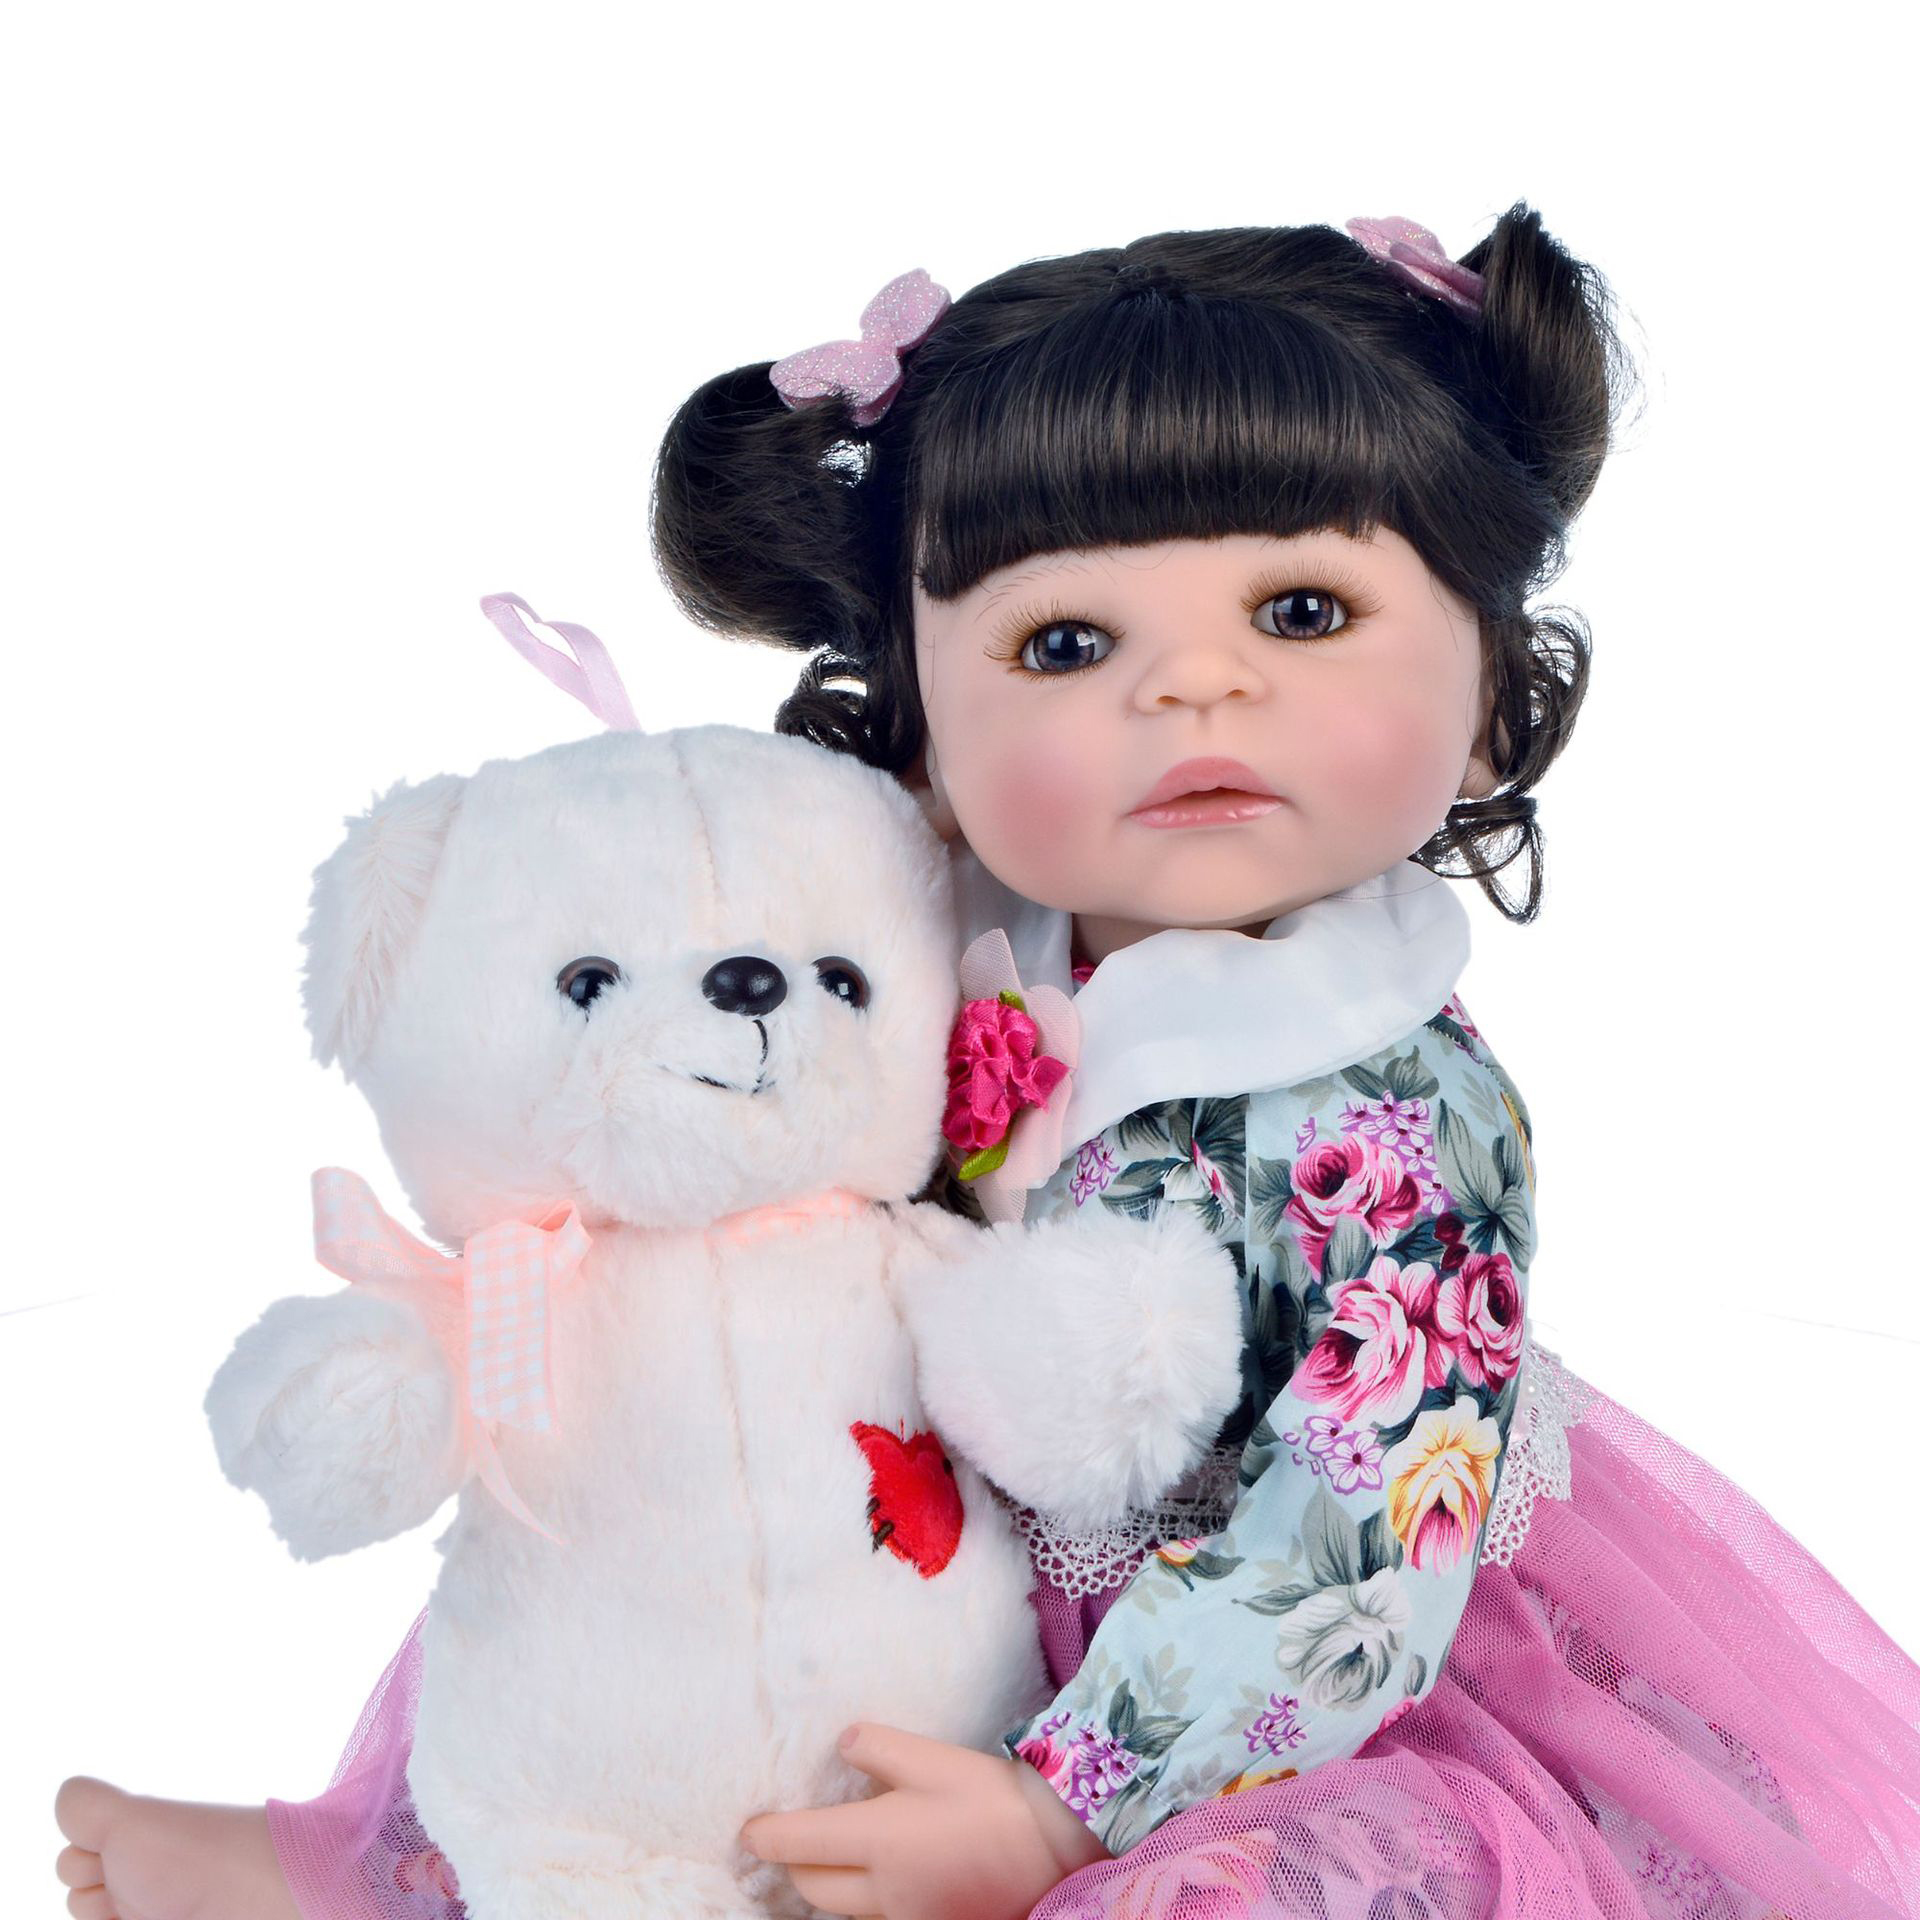 Curly hair 55cm bebe doll reborn toddler girl doll in Floral dress full body soft silicone realistic baby Bath toy waterproof